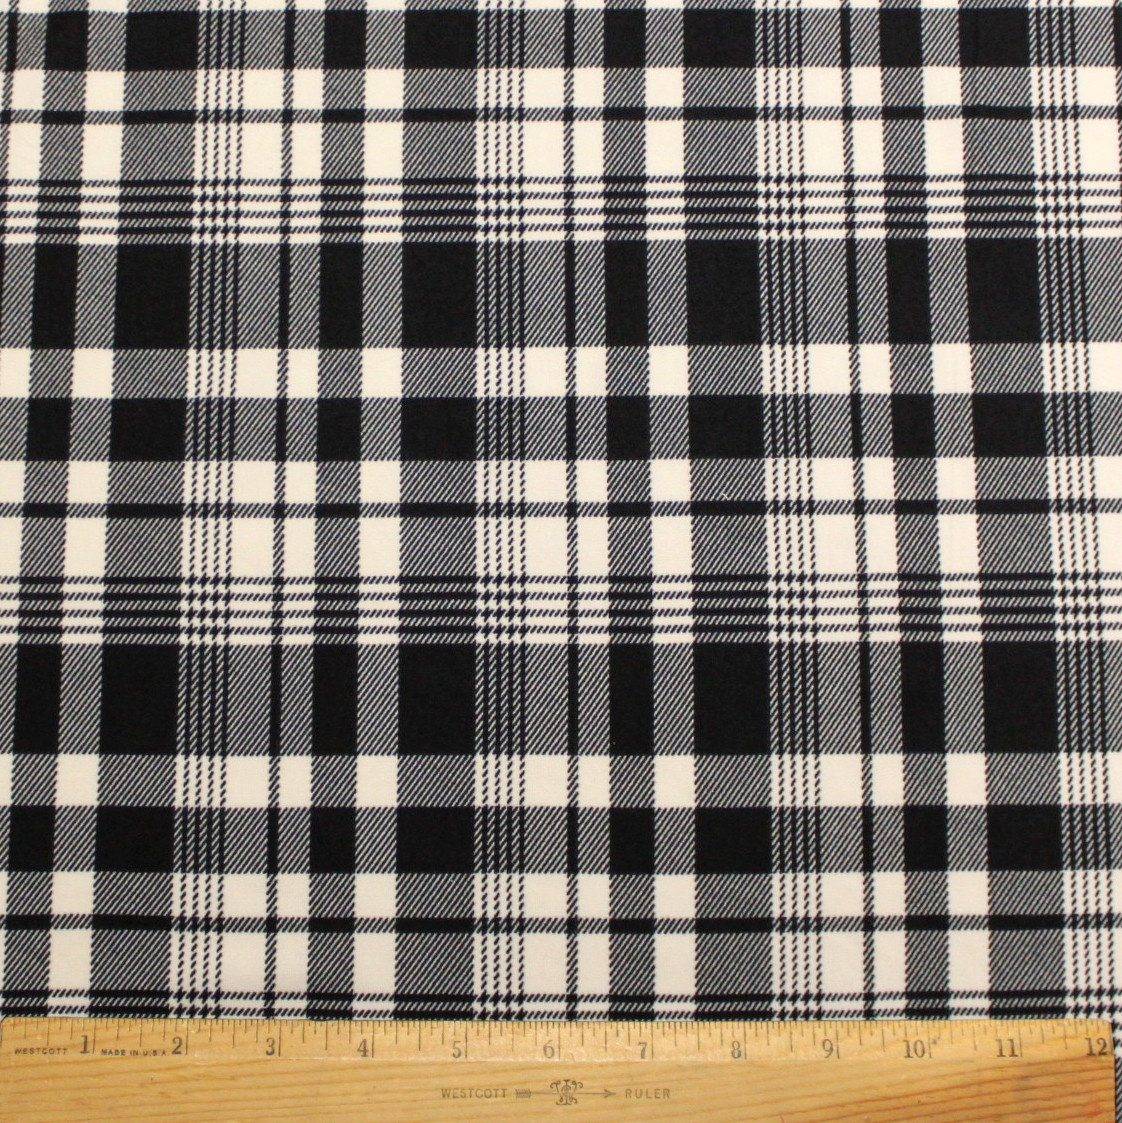 Black and Cream Plaid Double Brushed Poly Spandex Knit, 1 yard - Raspberry Creek Fabrics